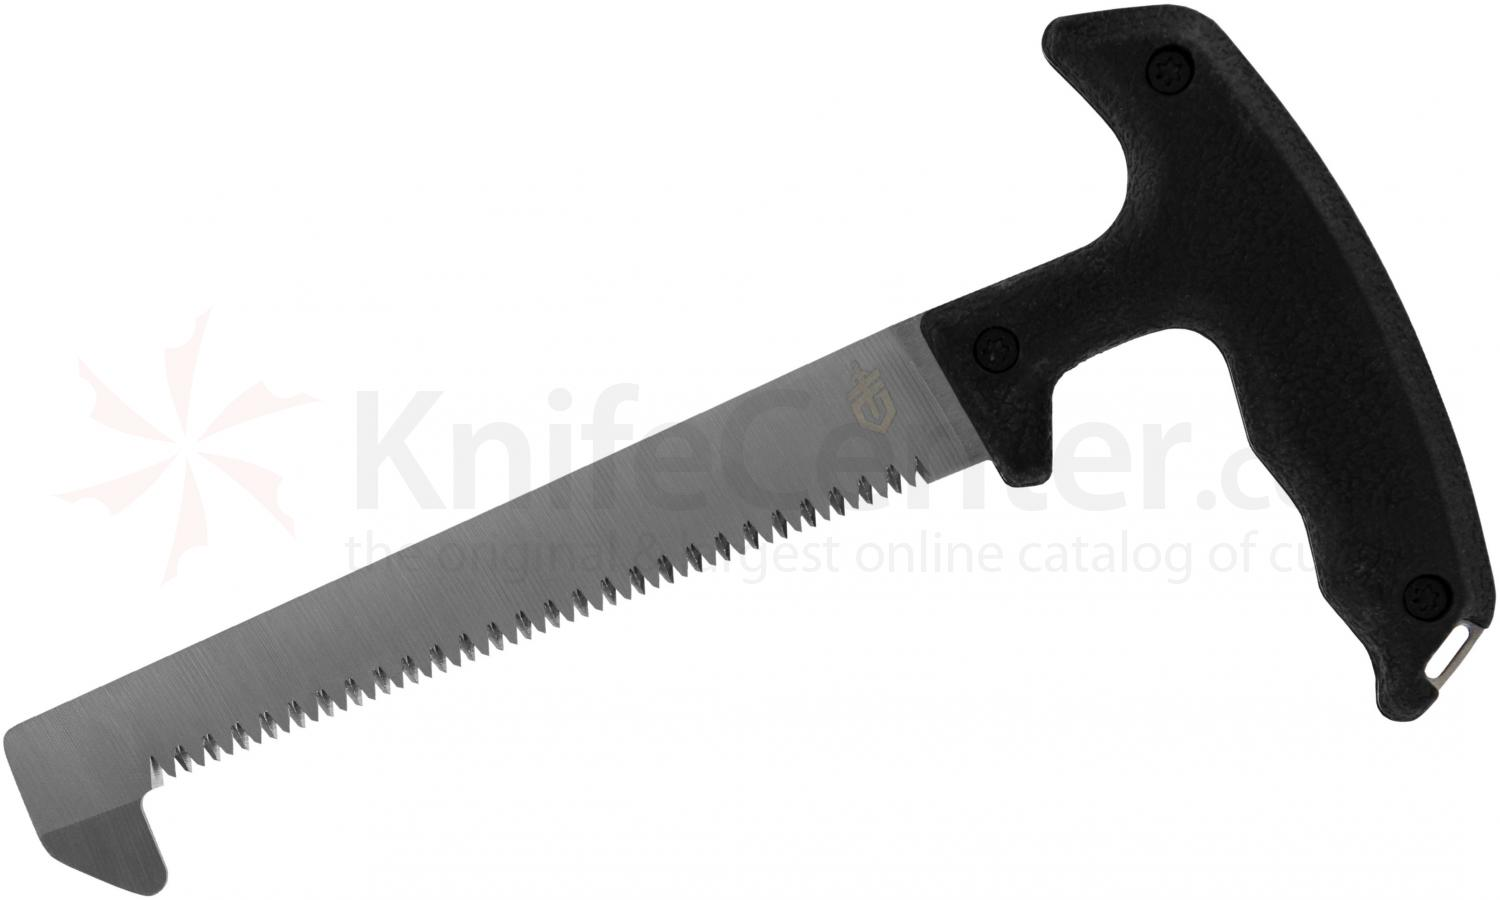 Gerber Moment Fixed Saw 5 inch SK5 Carbon Blade, Black Rubberized Handle